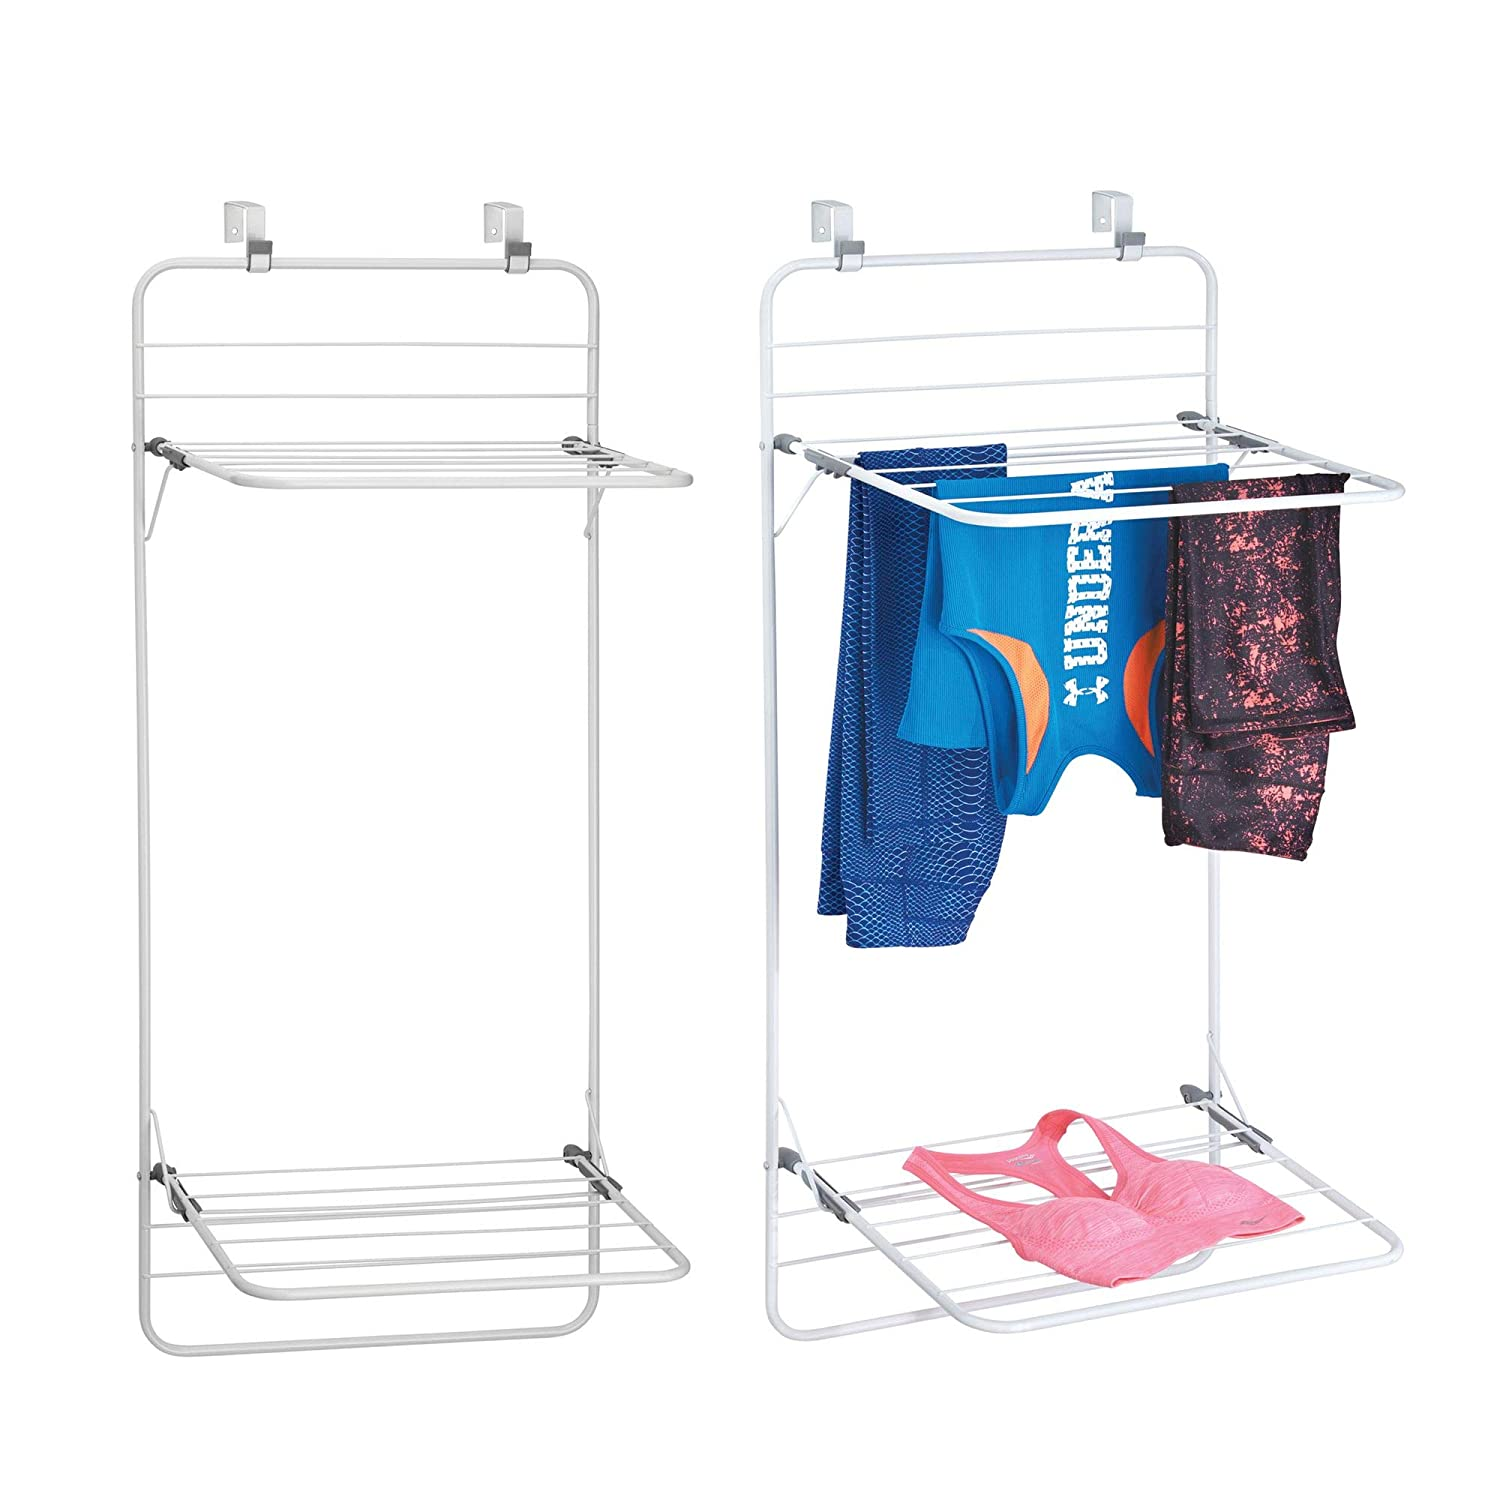 Amazoncom Mdesign Over Door Space Saver Clothes Drying Rack For